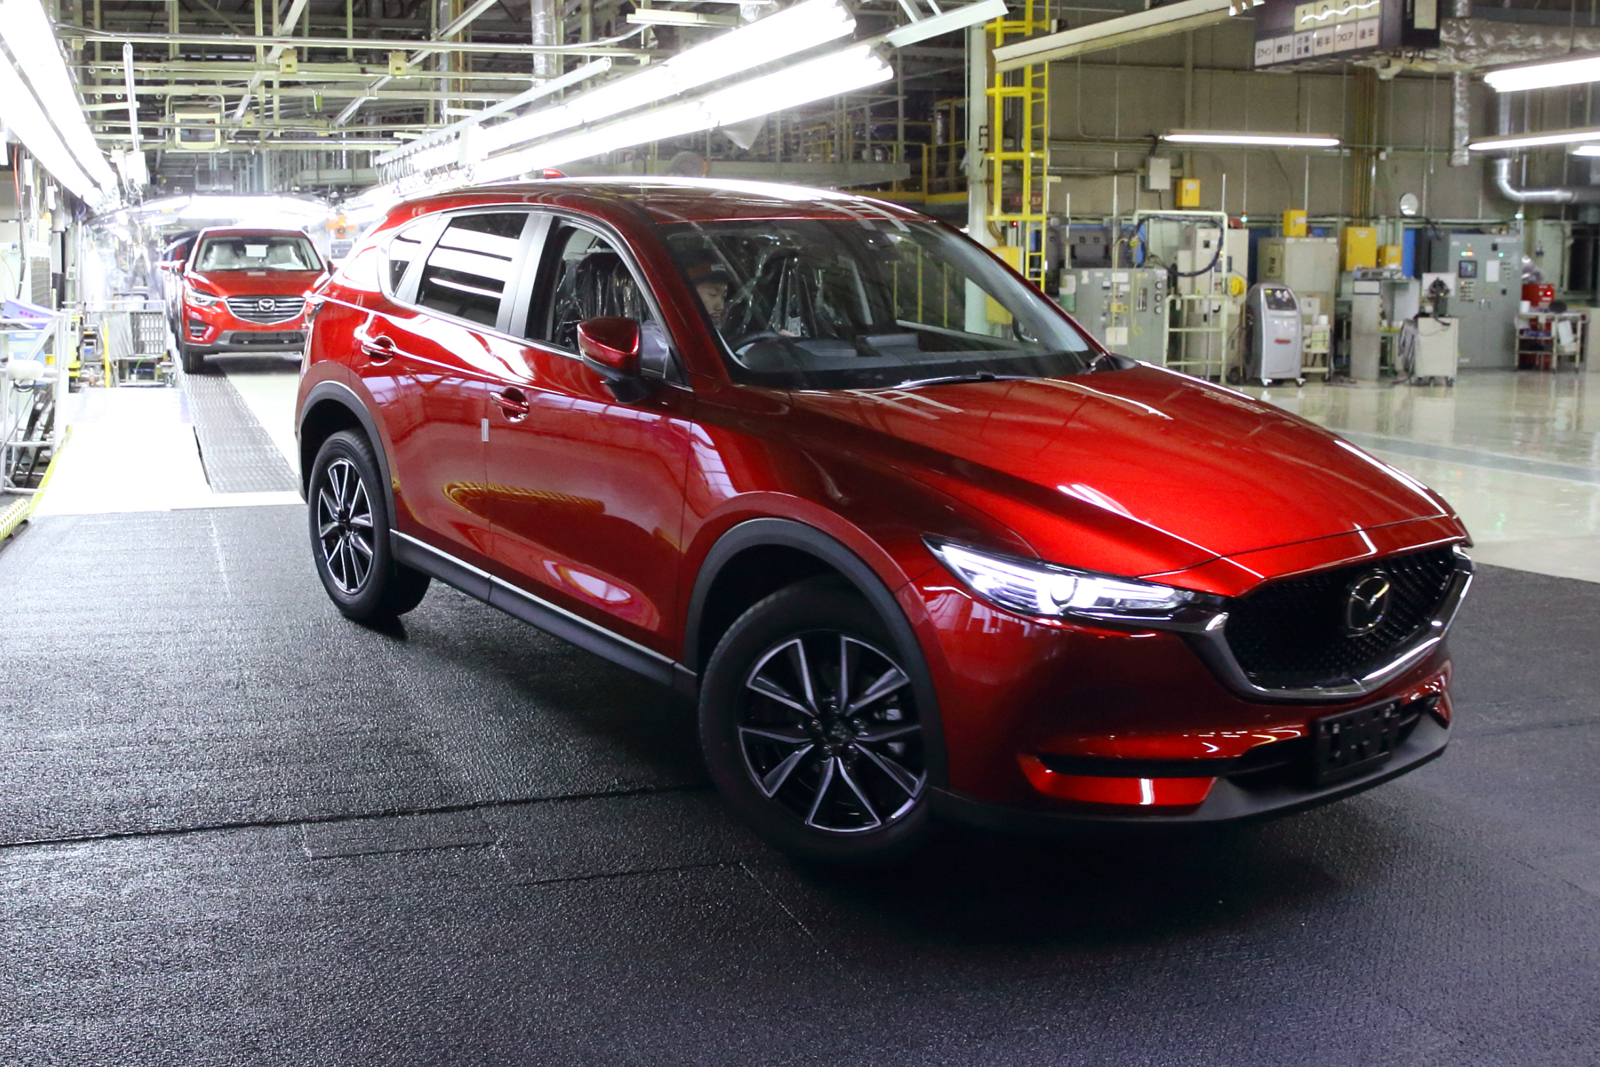 Mazda Cx 5 Diesel Release Date >> 2017 Mazda Cx 5 Starts Production Japanese On Sale Date Set For